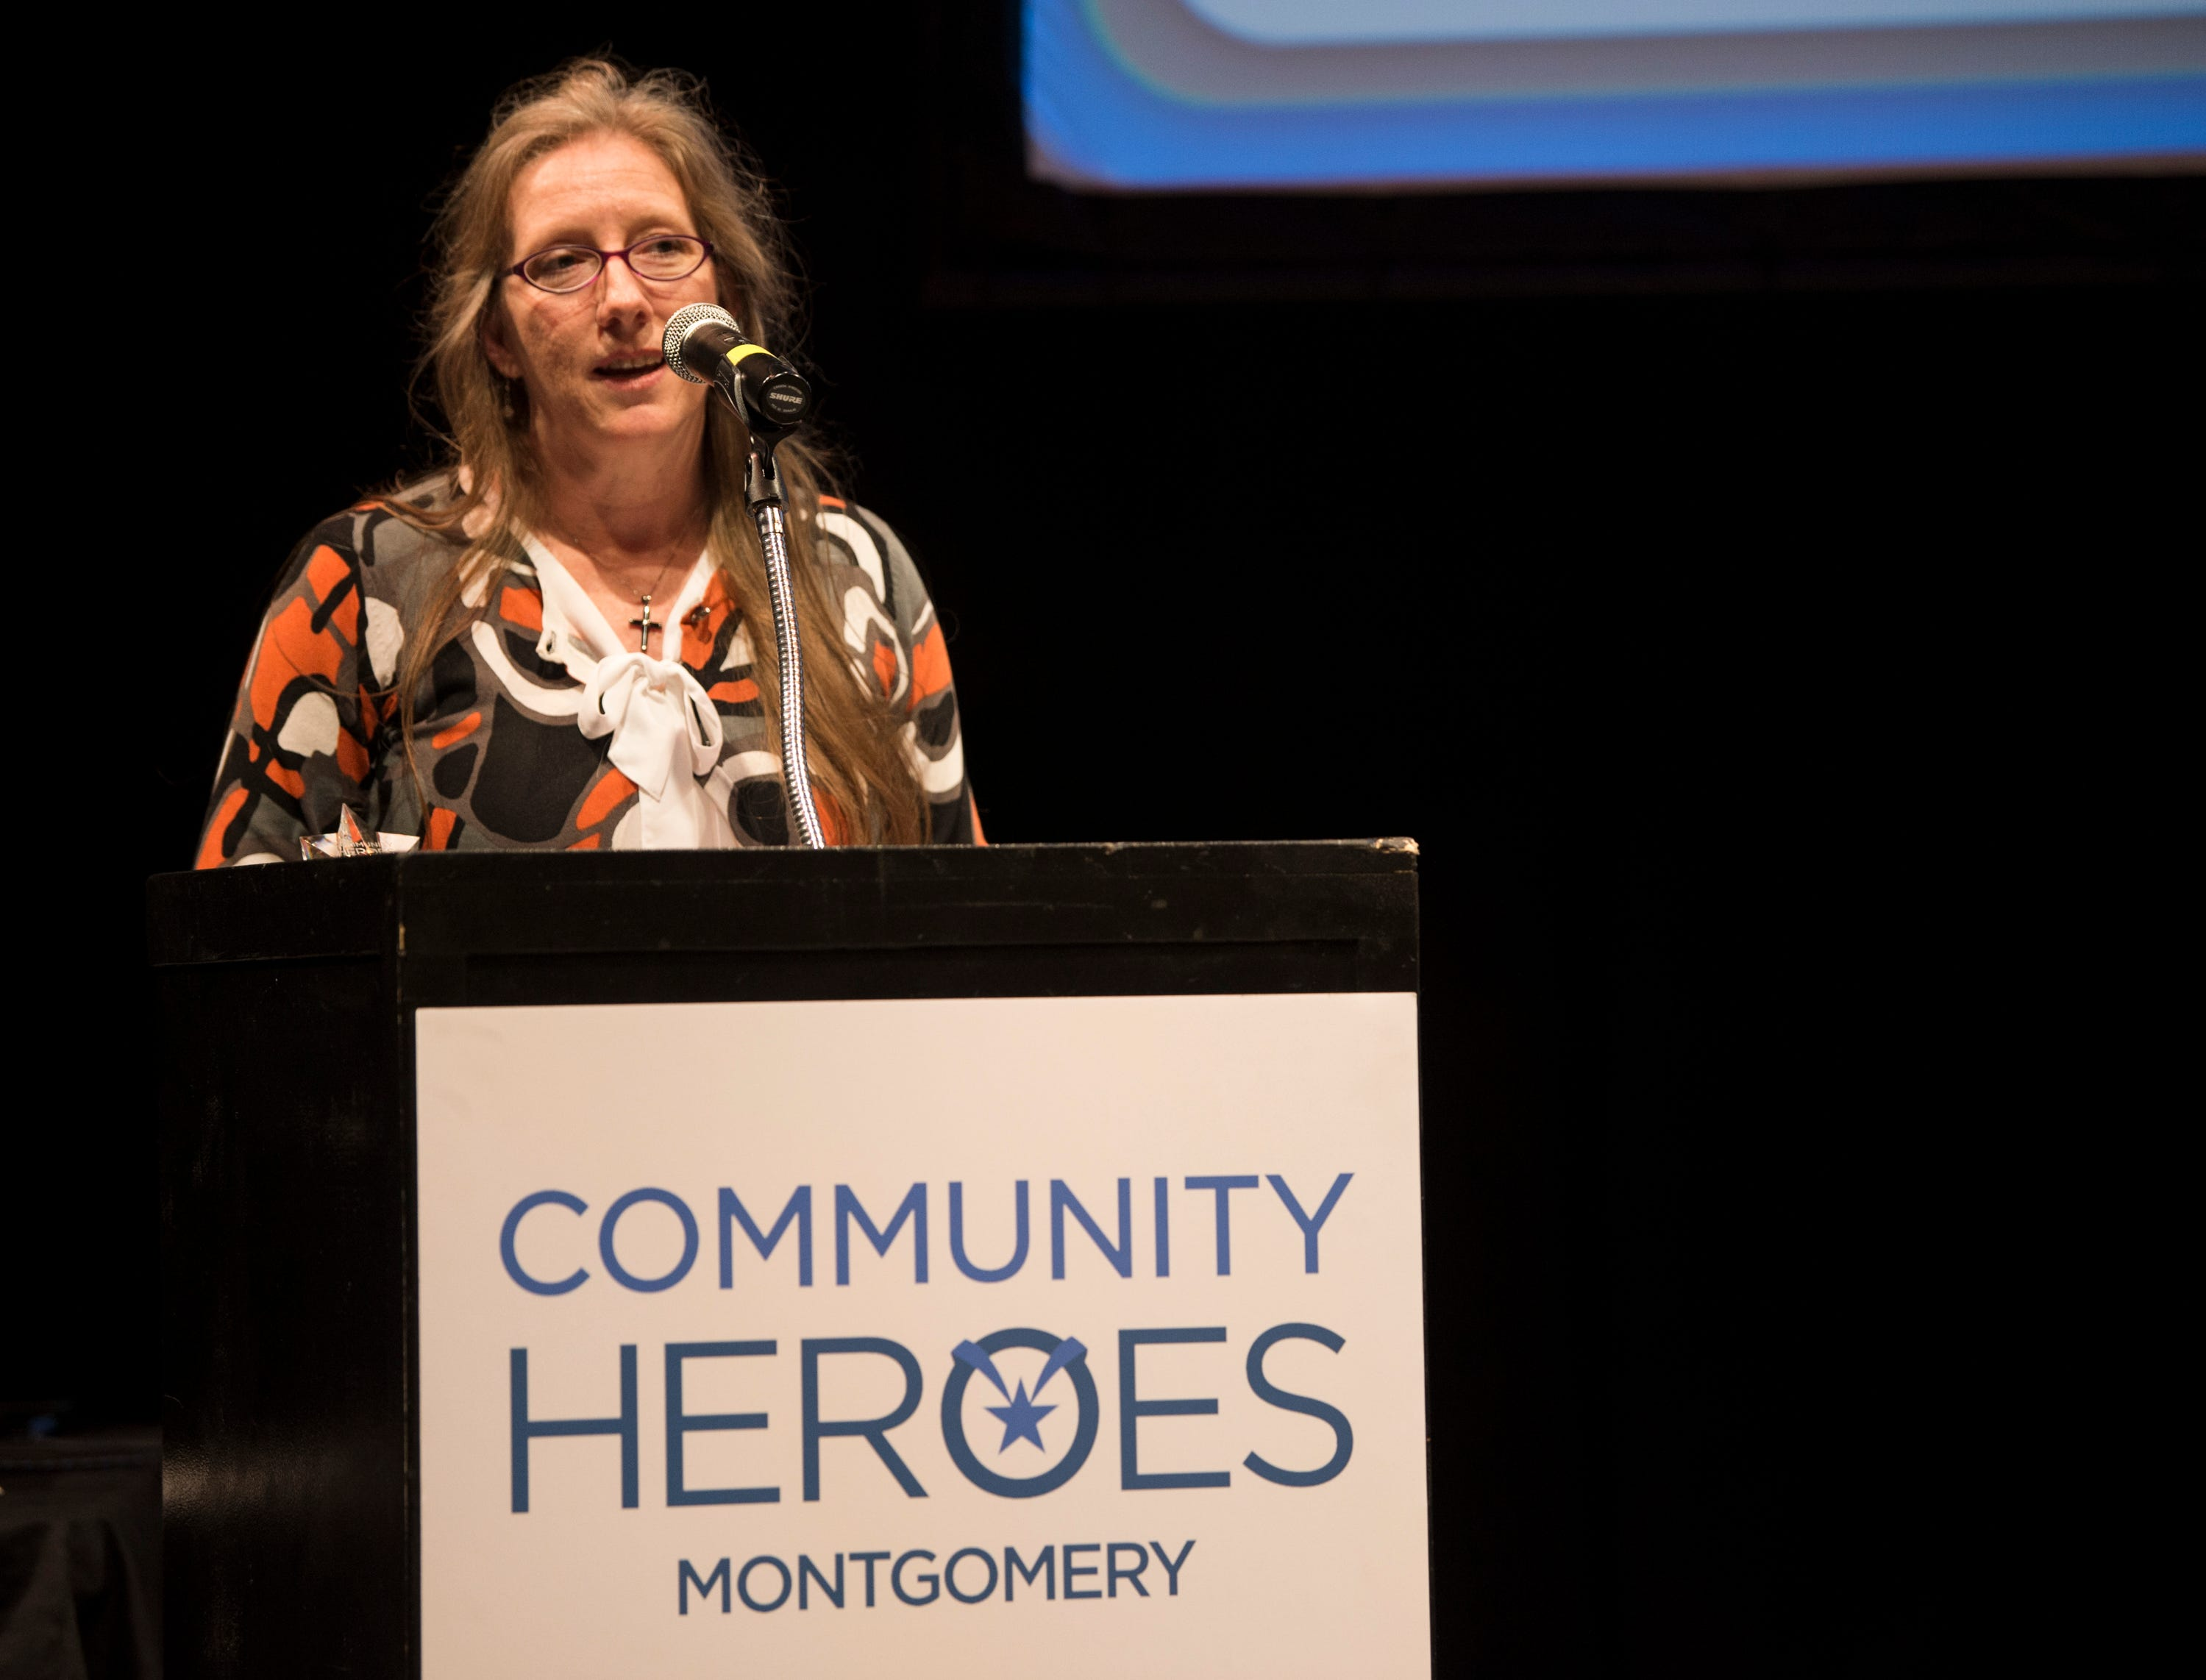 Community Hero of the year LaDonna Brendle speaks during the Community Heroes awards ceremony at Alabama Shakespeare Festival in Montgomery, Ala., on Tuesday, Jan. 8, 2019.